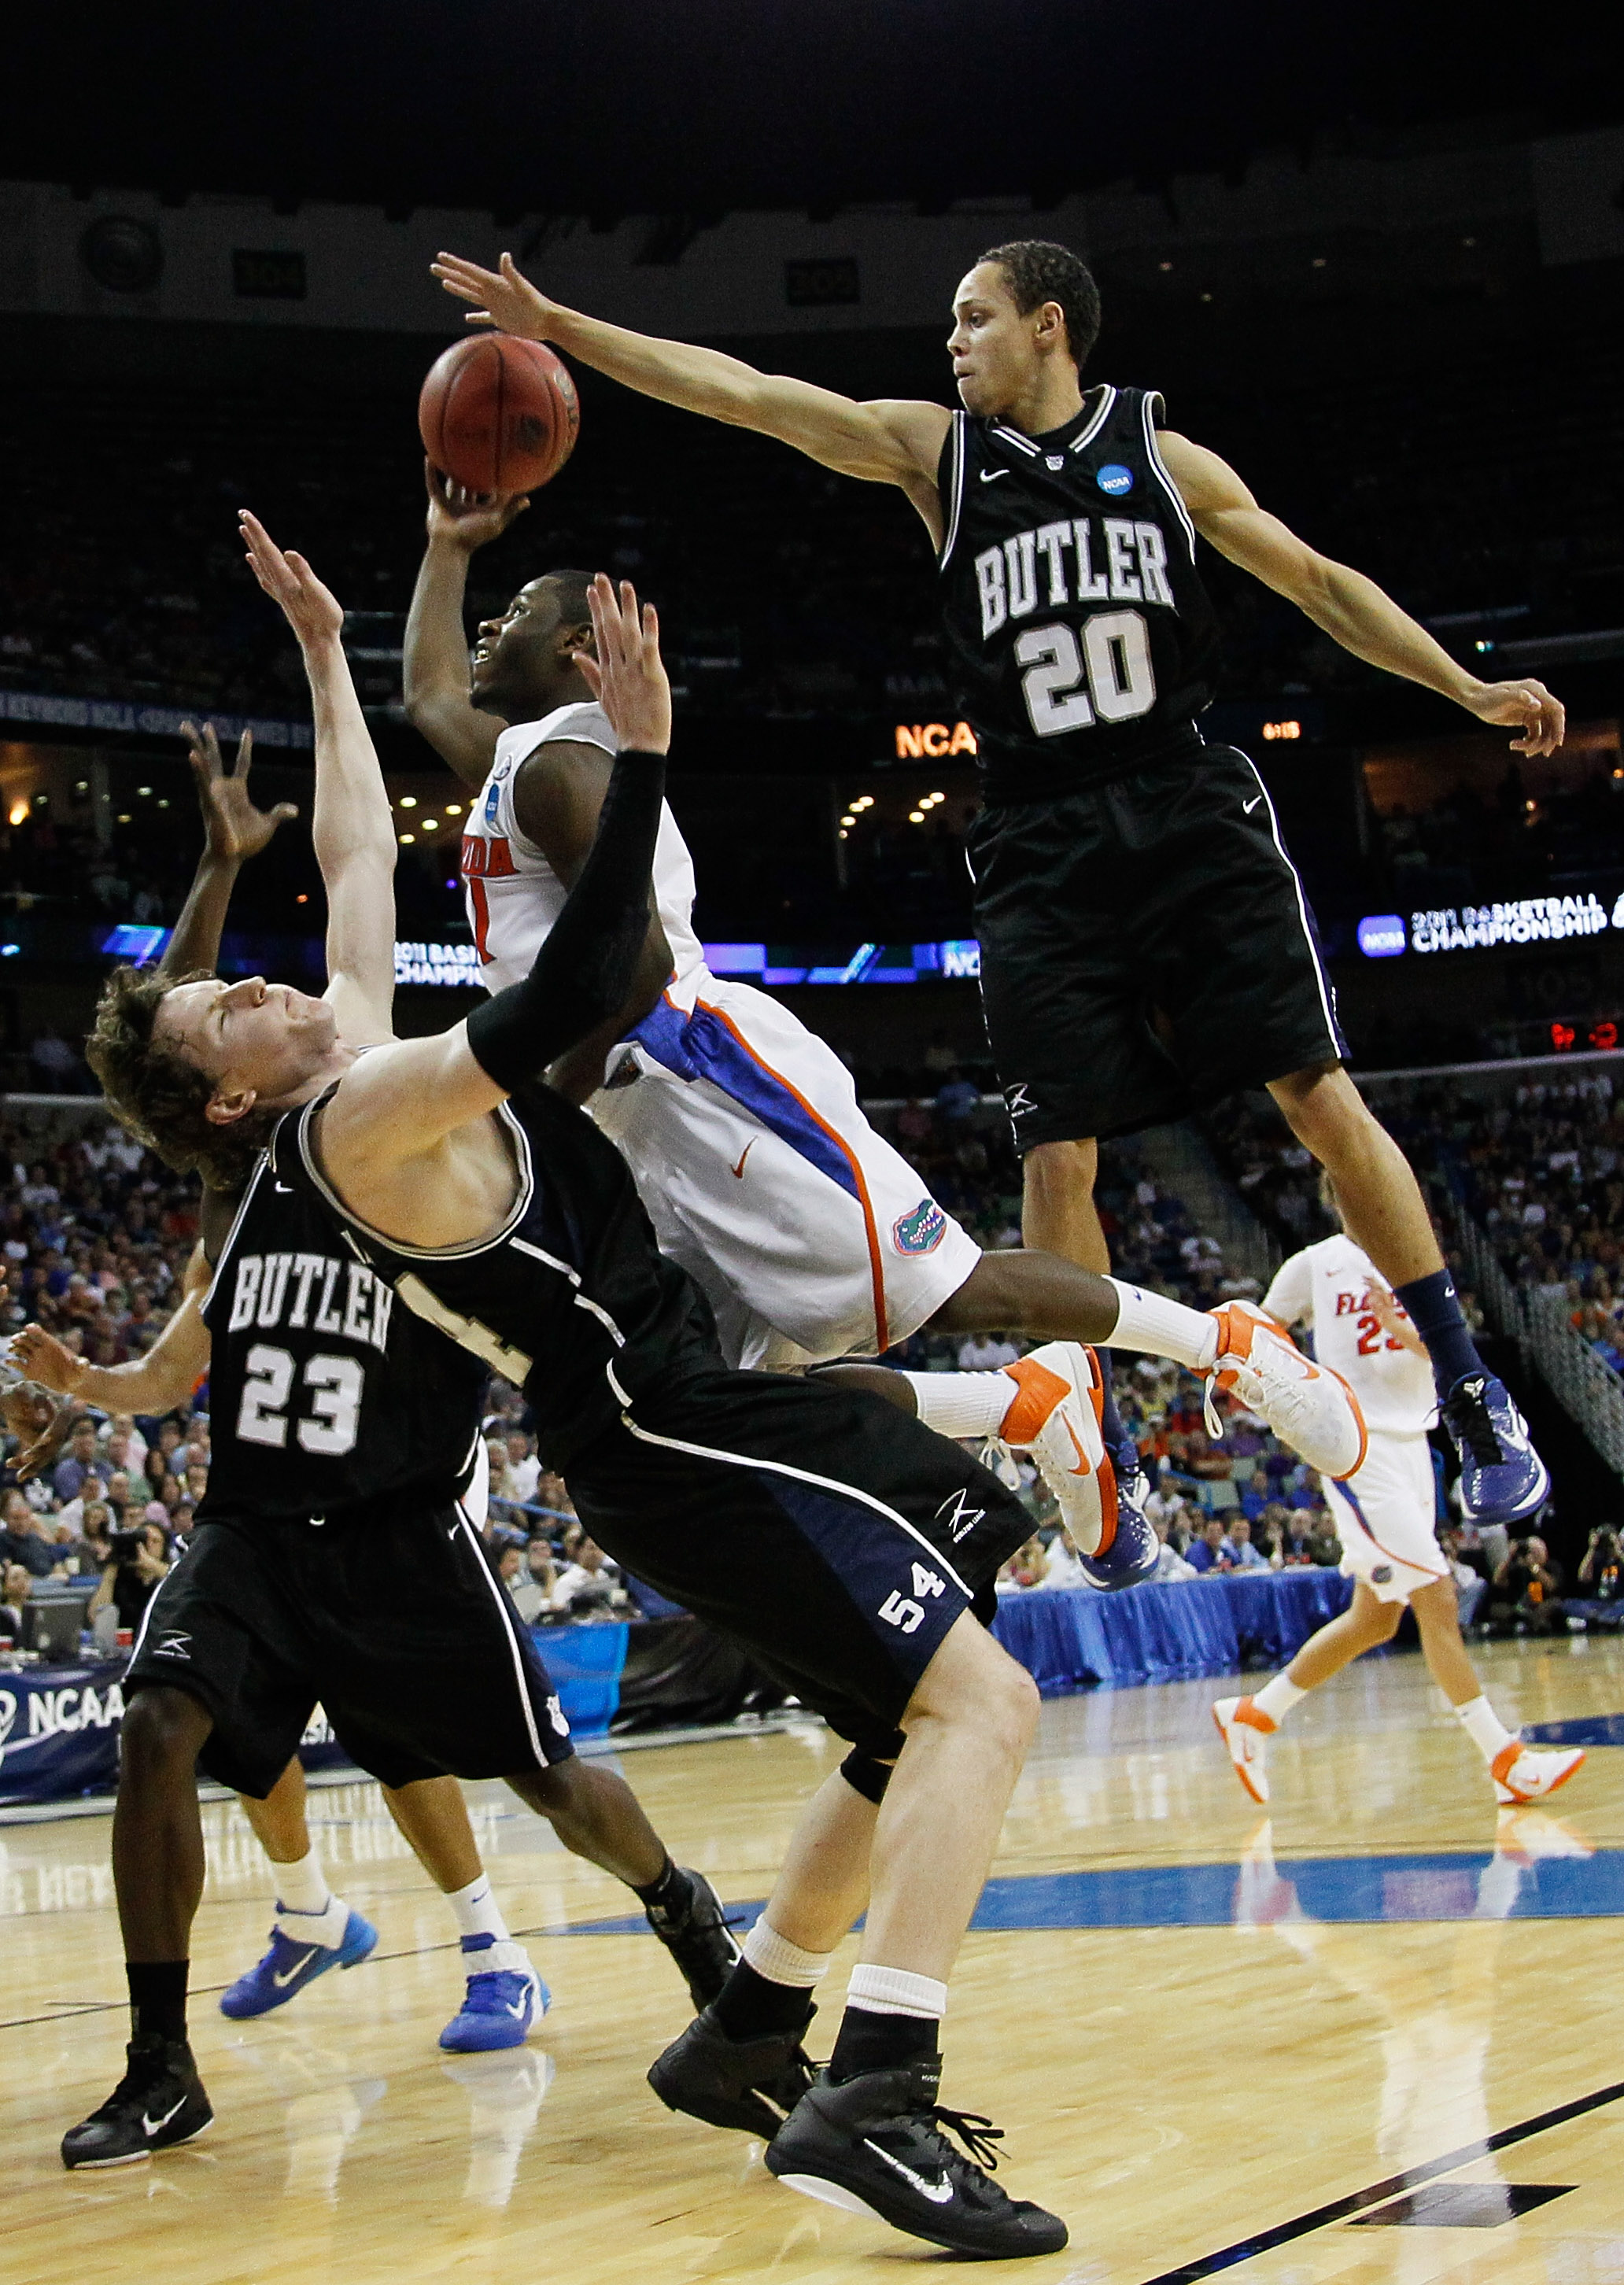 NEW ORLEANS, LA - MARCH 26:  Erving Walker #11 of the Florida Gators fouls Matt Howard #54 as Chrishawn Hopkins #20 of the Butler Bulldogs tries to block his shot in the second half during the Southeast regional final of the 2011 NCAA men's basketball tou